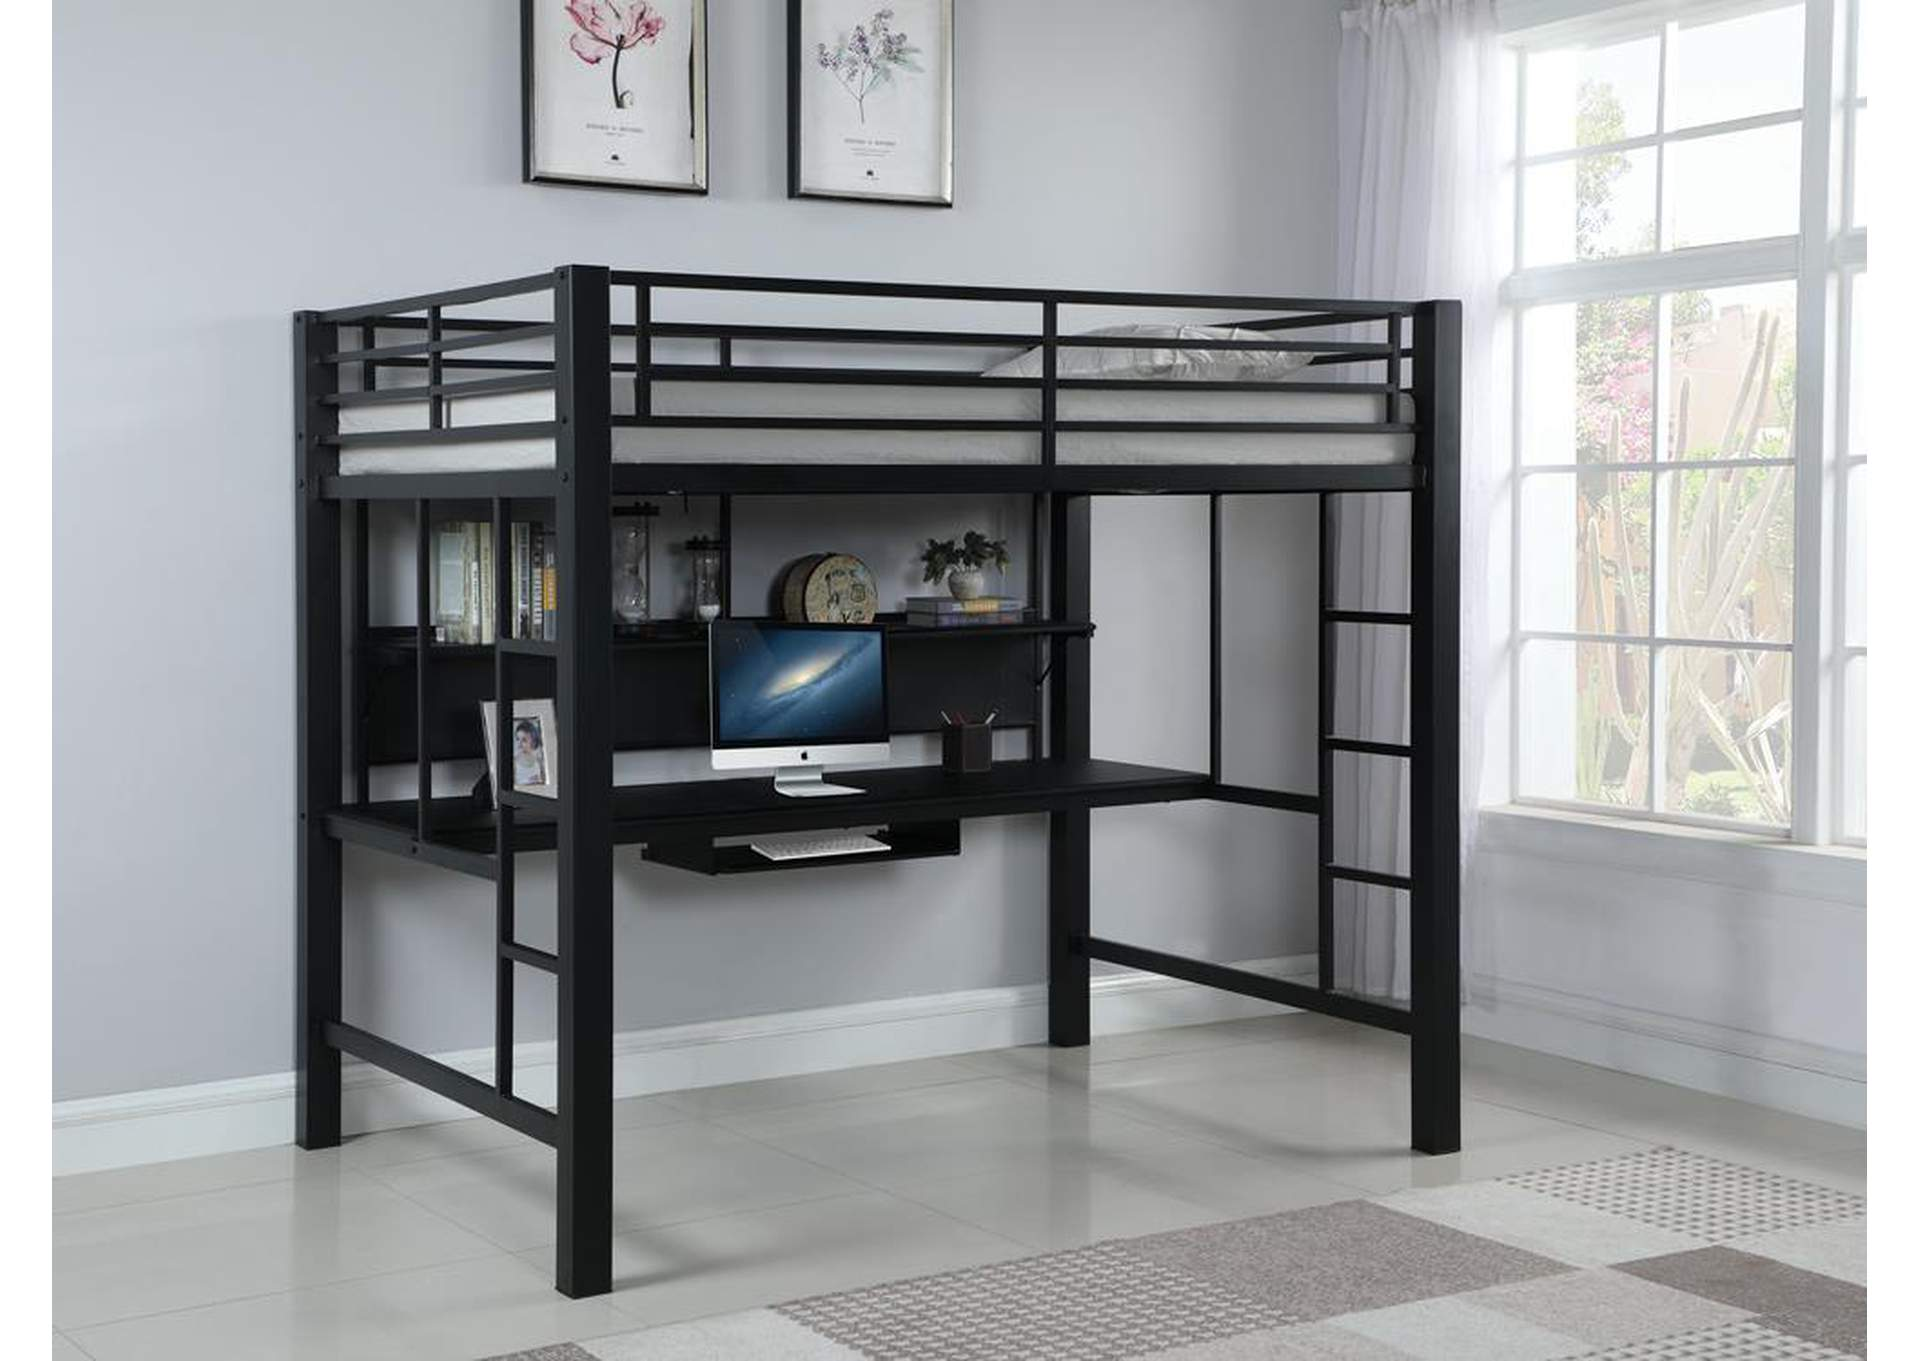 Loblolly Contemporary Black Metal Loft Bed,Coaster Furniture